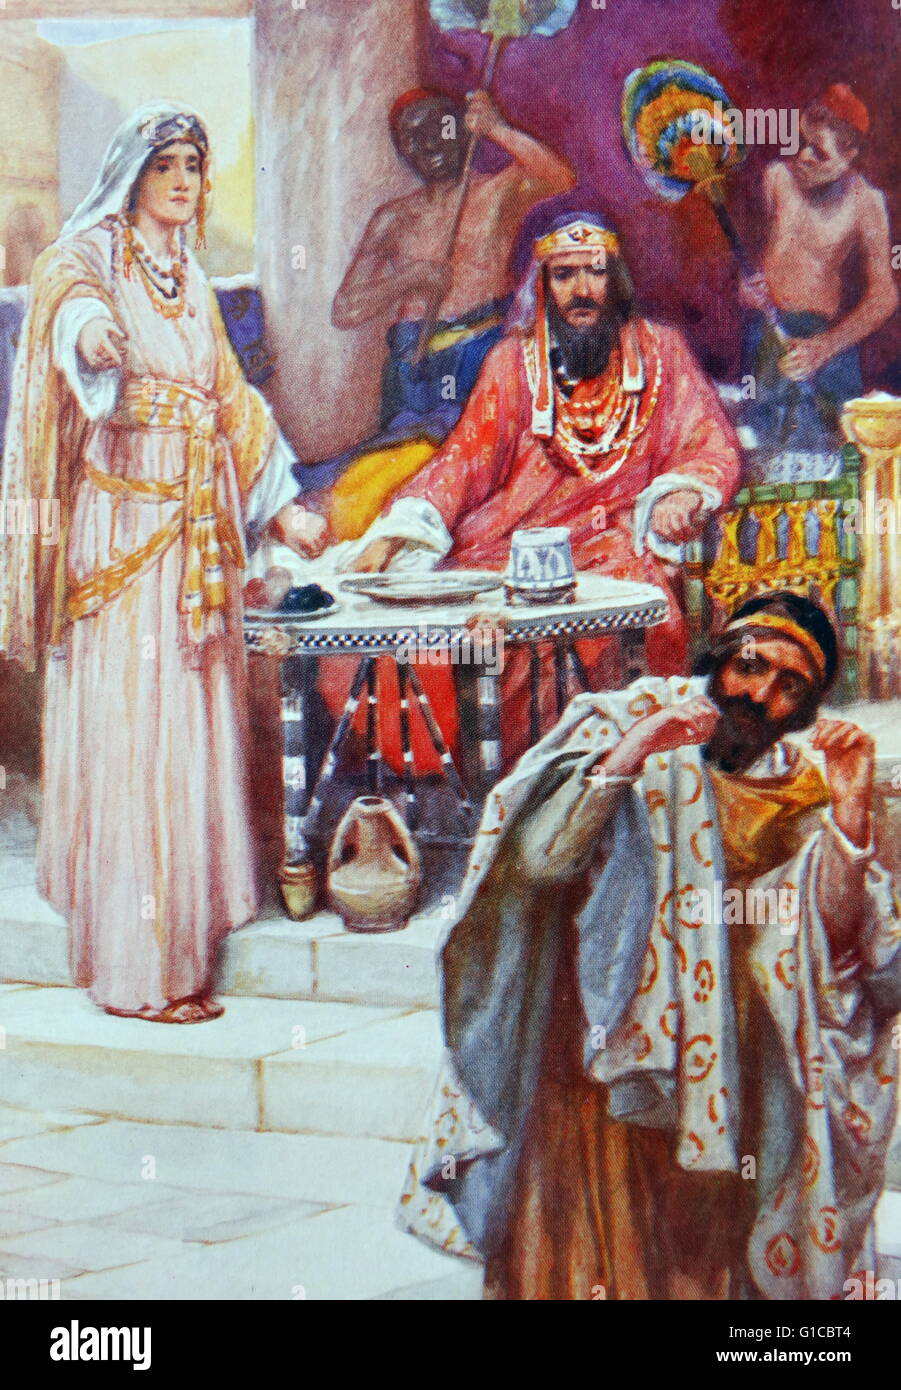 Haman accused by Queen Esther of plotting to kill the Persian Jews. Haman the Agagite described in the old testament, - Stock Image